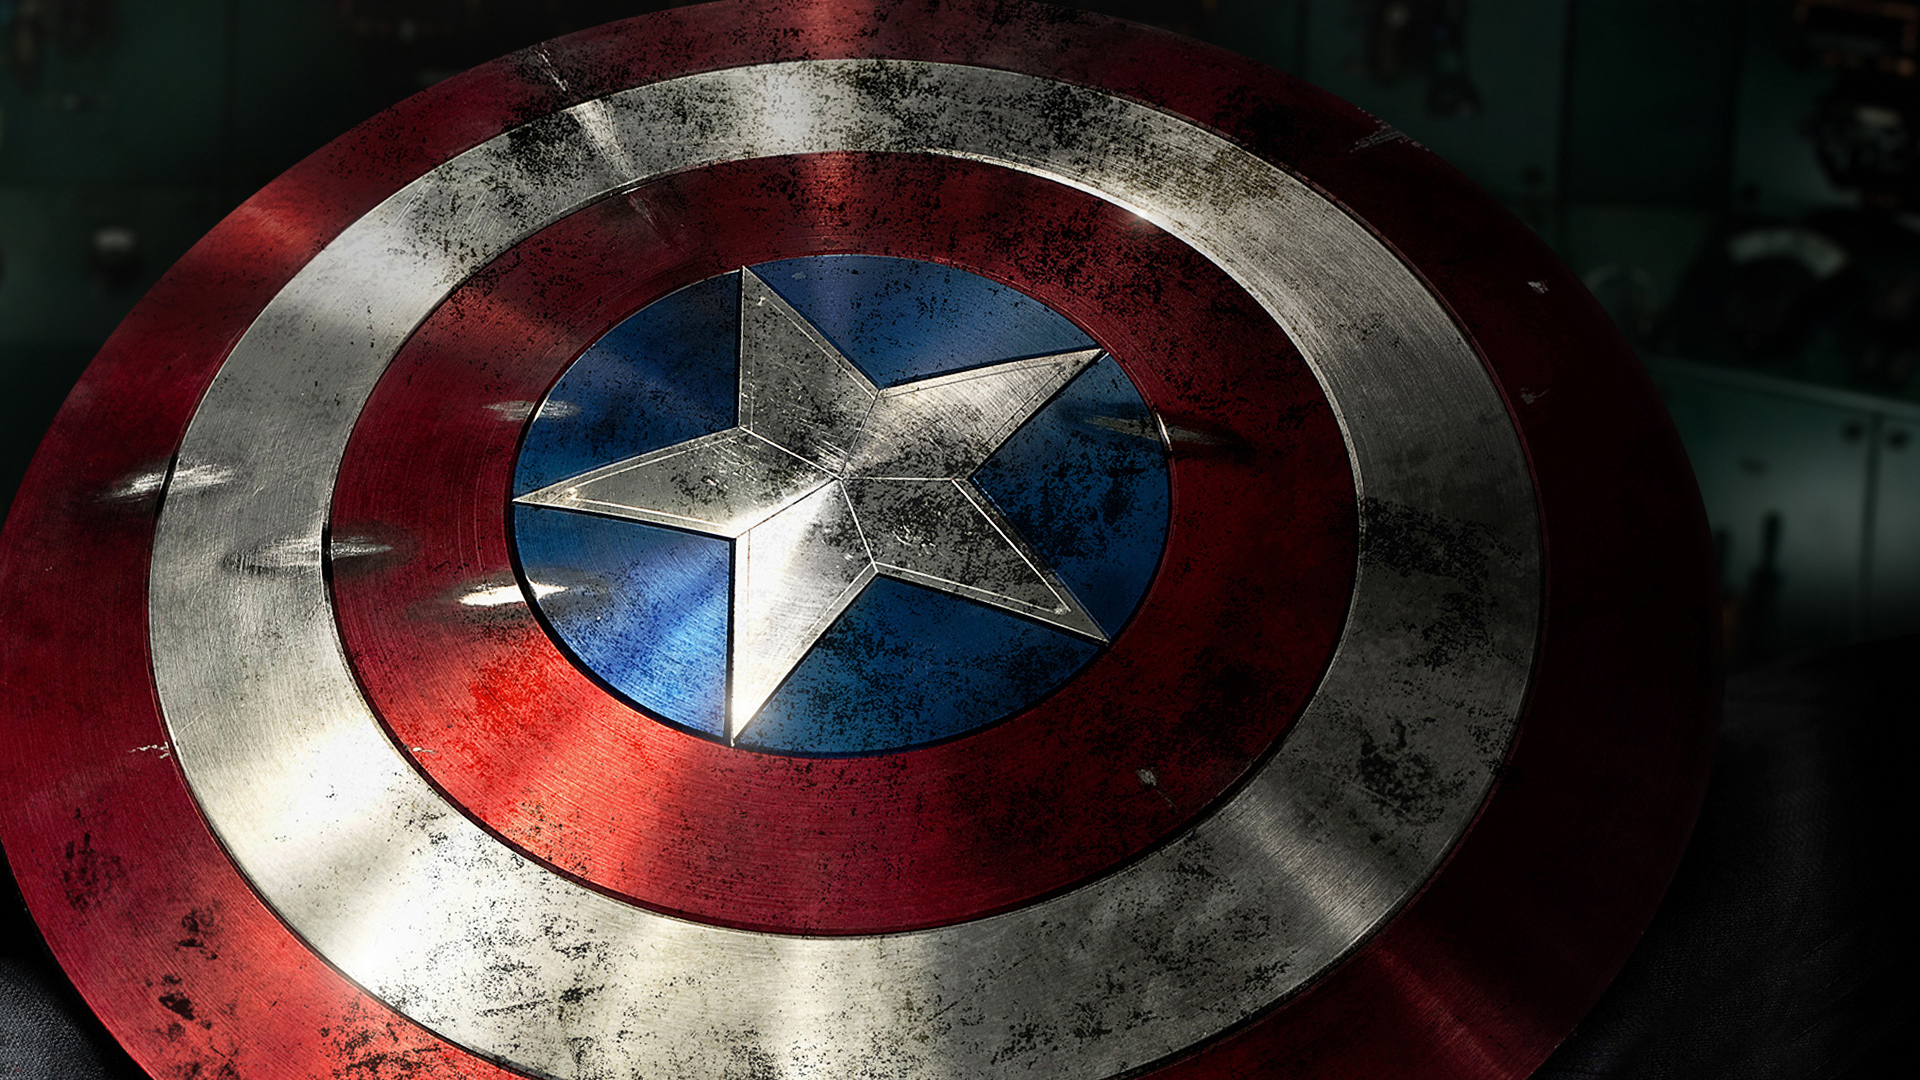 Captain Americas Shield was the primary defensive and offensive weapon used and owned by Steve Rogers The original shield that Rogers carried into battle was made